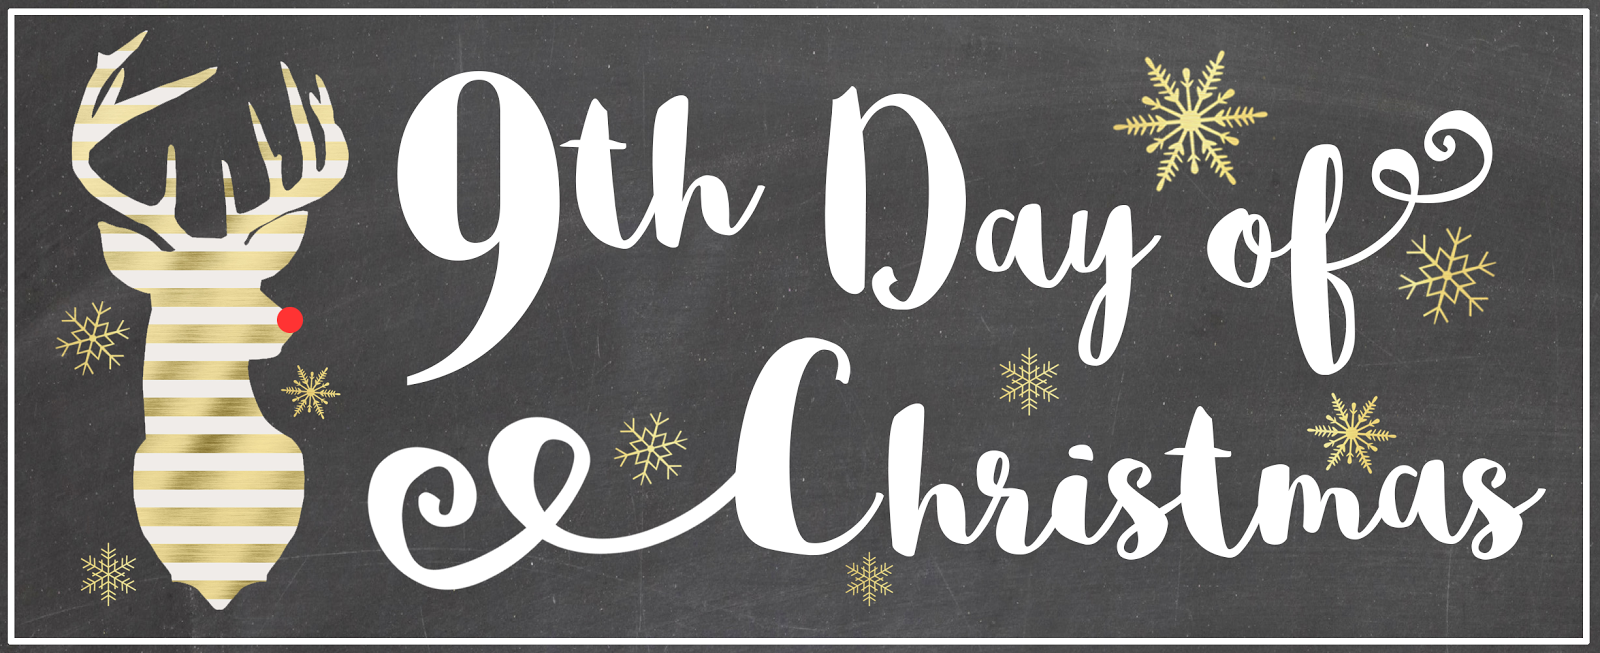 9th day of christmas gift ideas